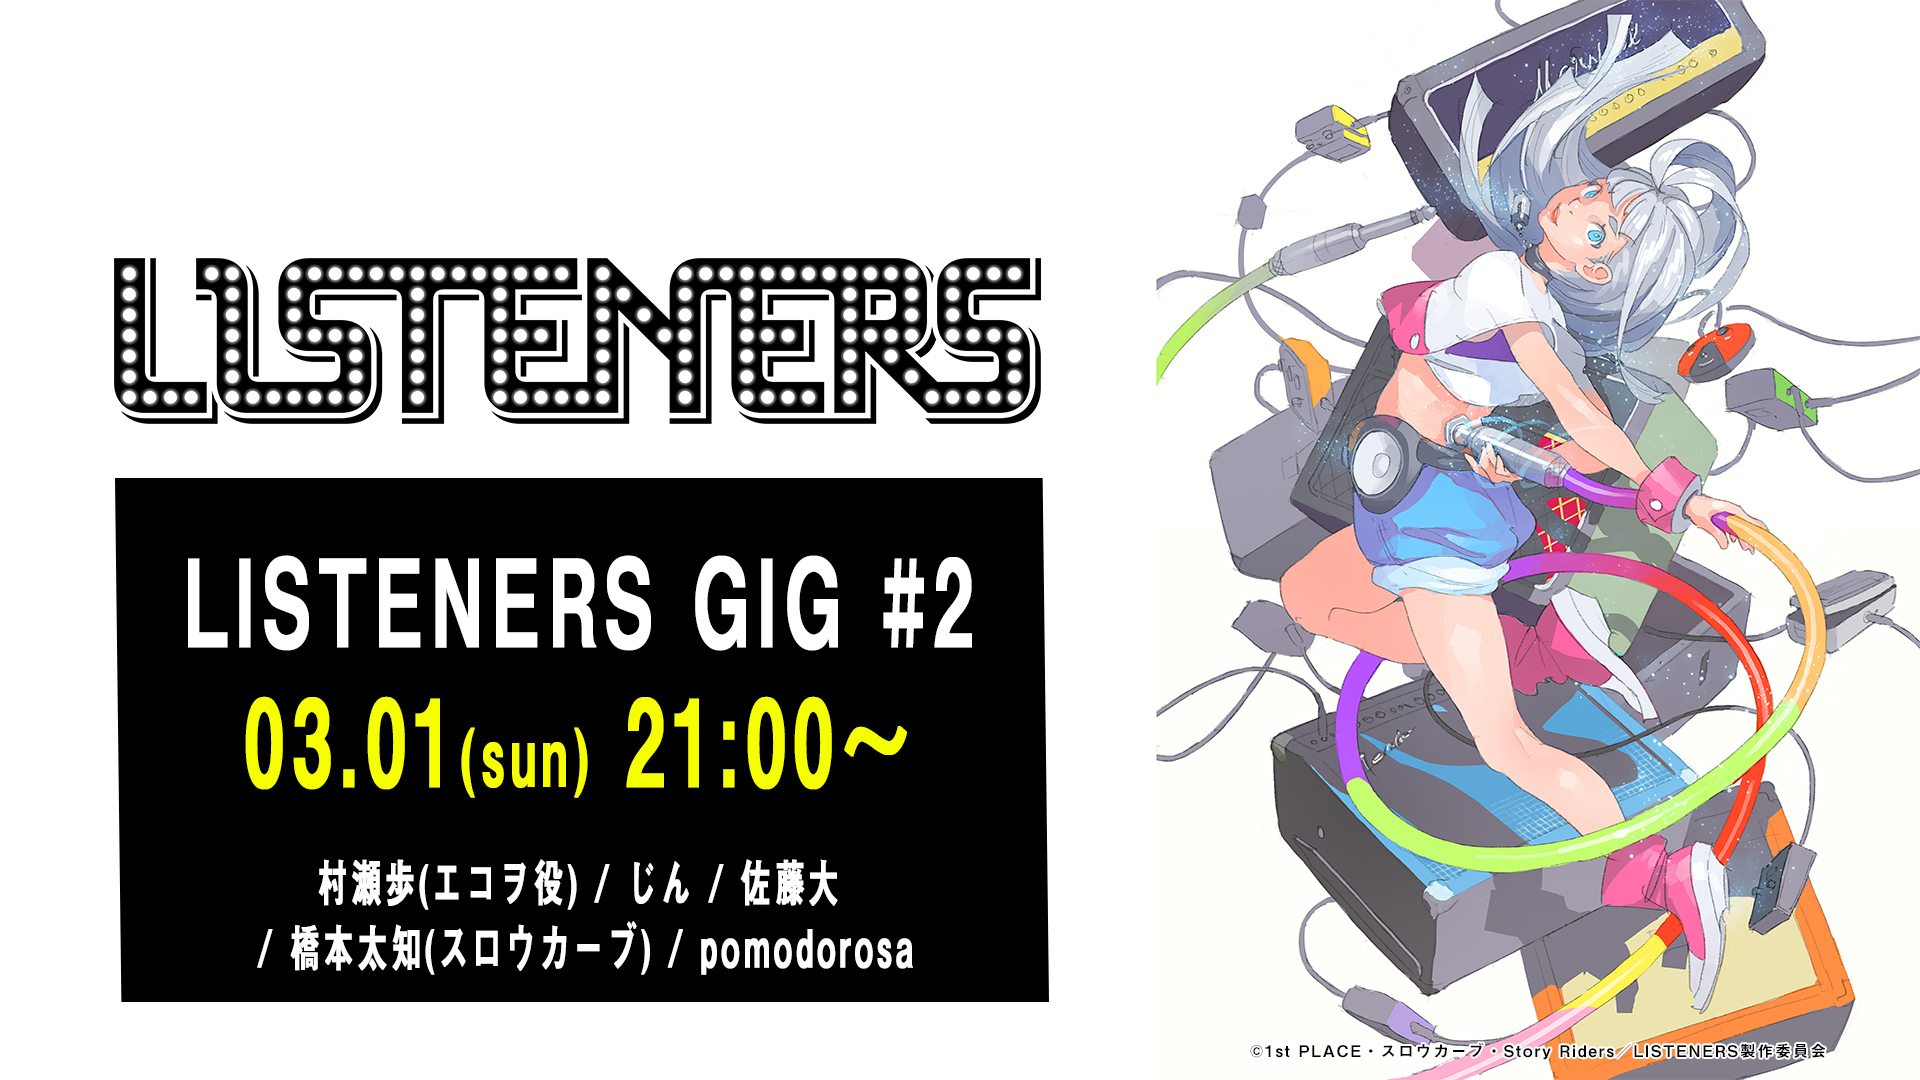 「LISTENERS GIG #2」 (C)1st PLACE・スロウカーブ・Story Riders/LISTENERS製作委員会